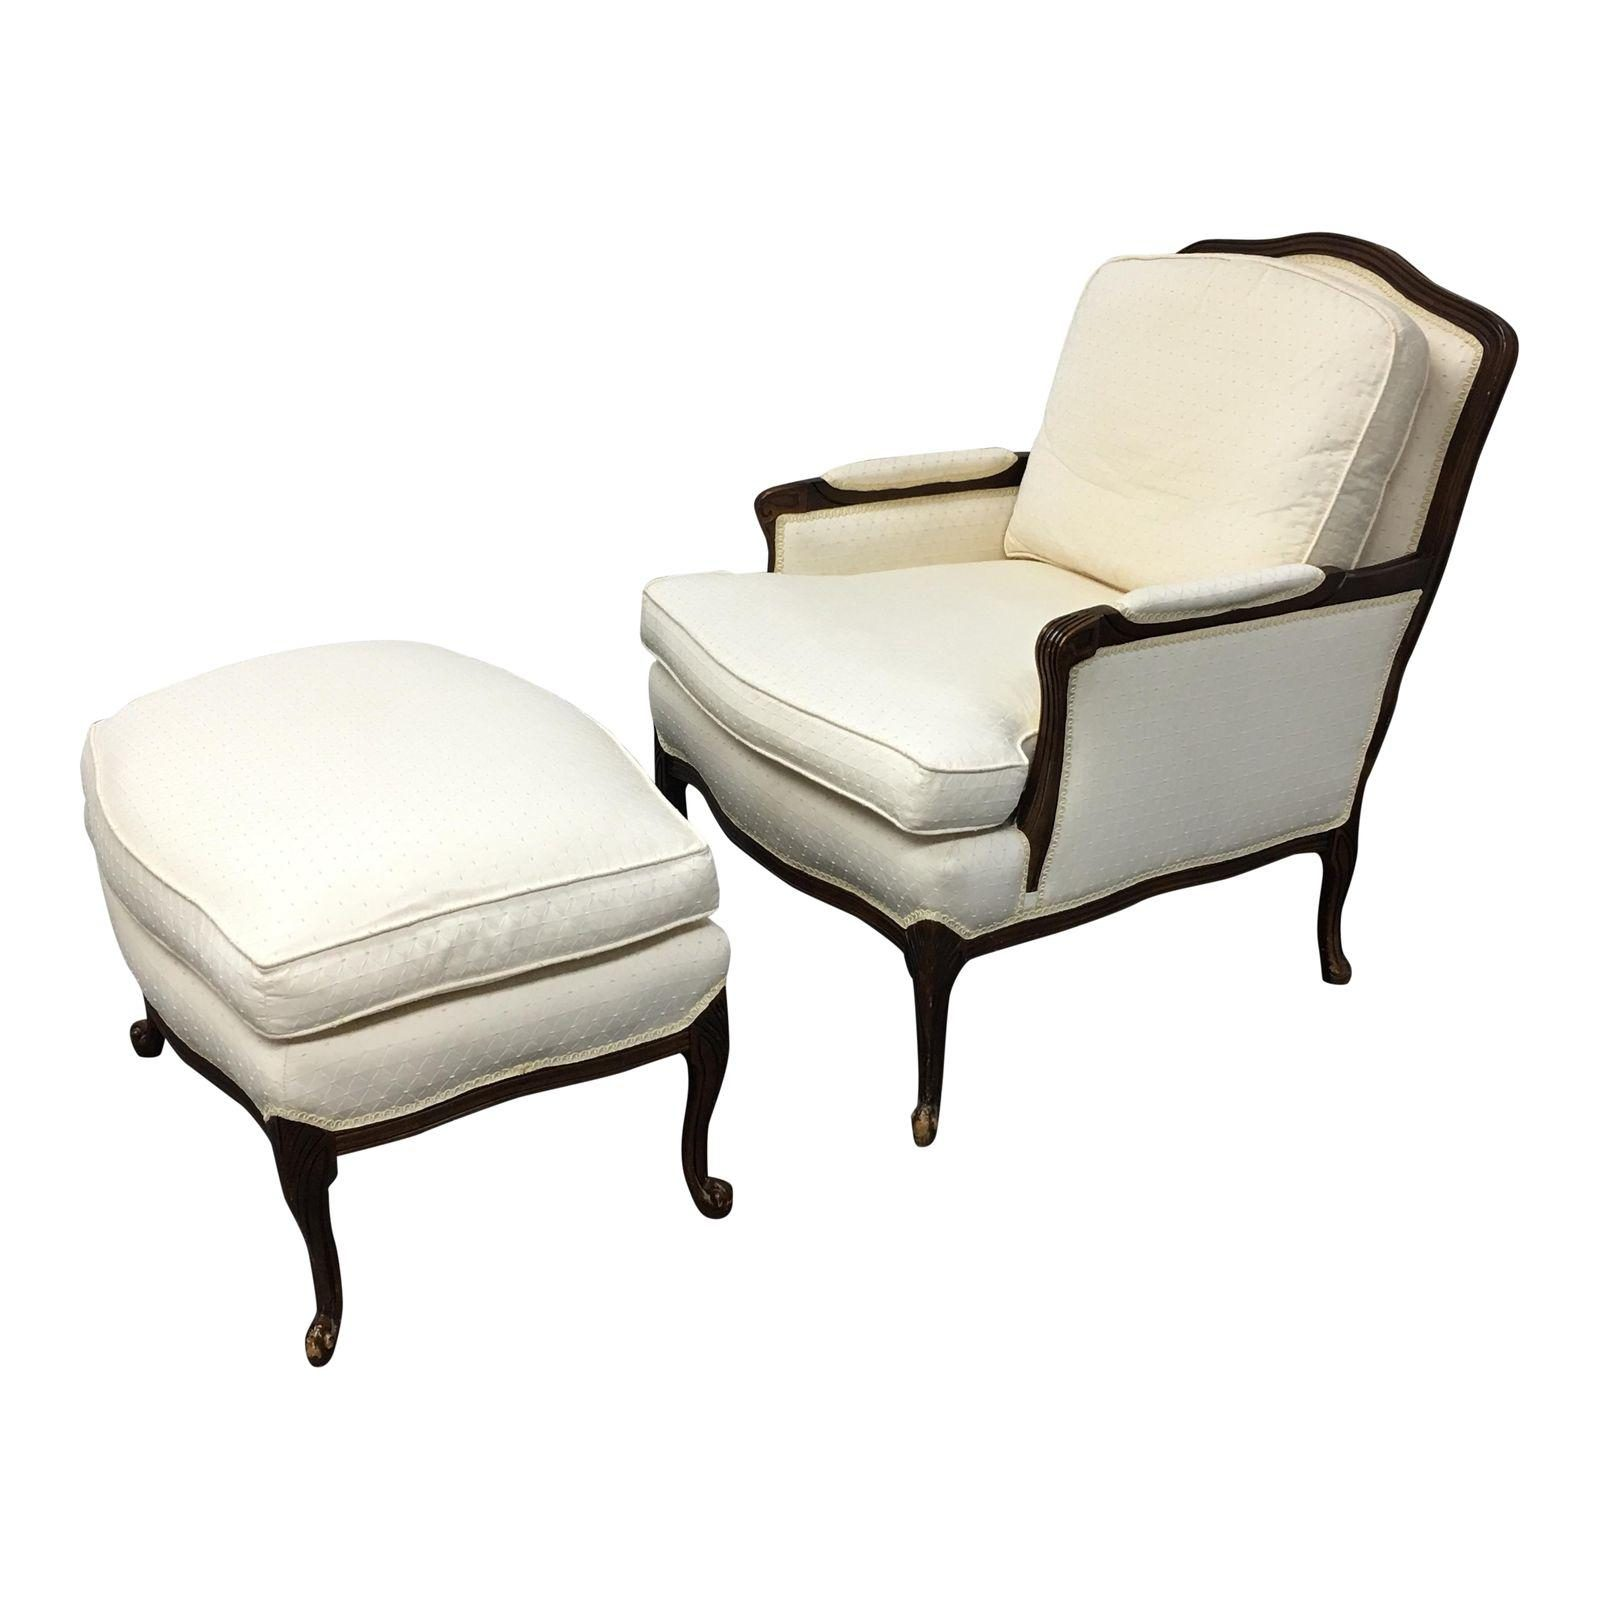 Bergere chair and ottoman - Bergere Chair And Ottoman 5